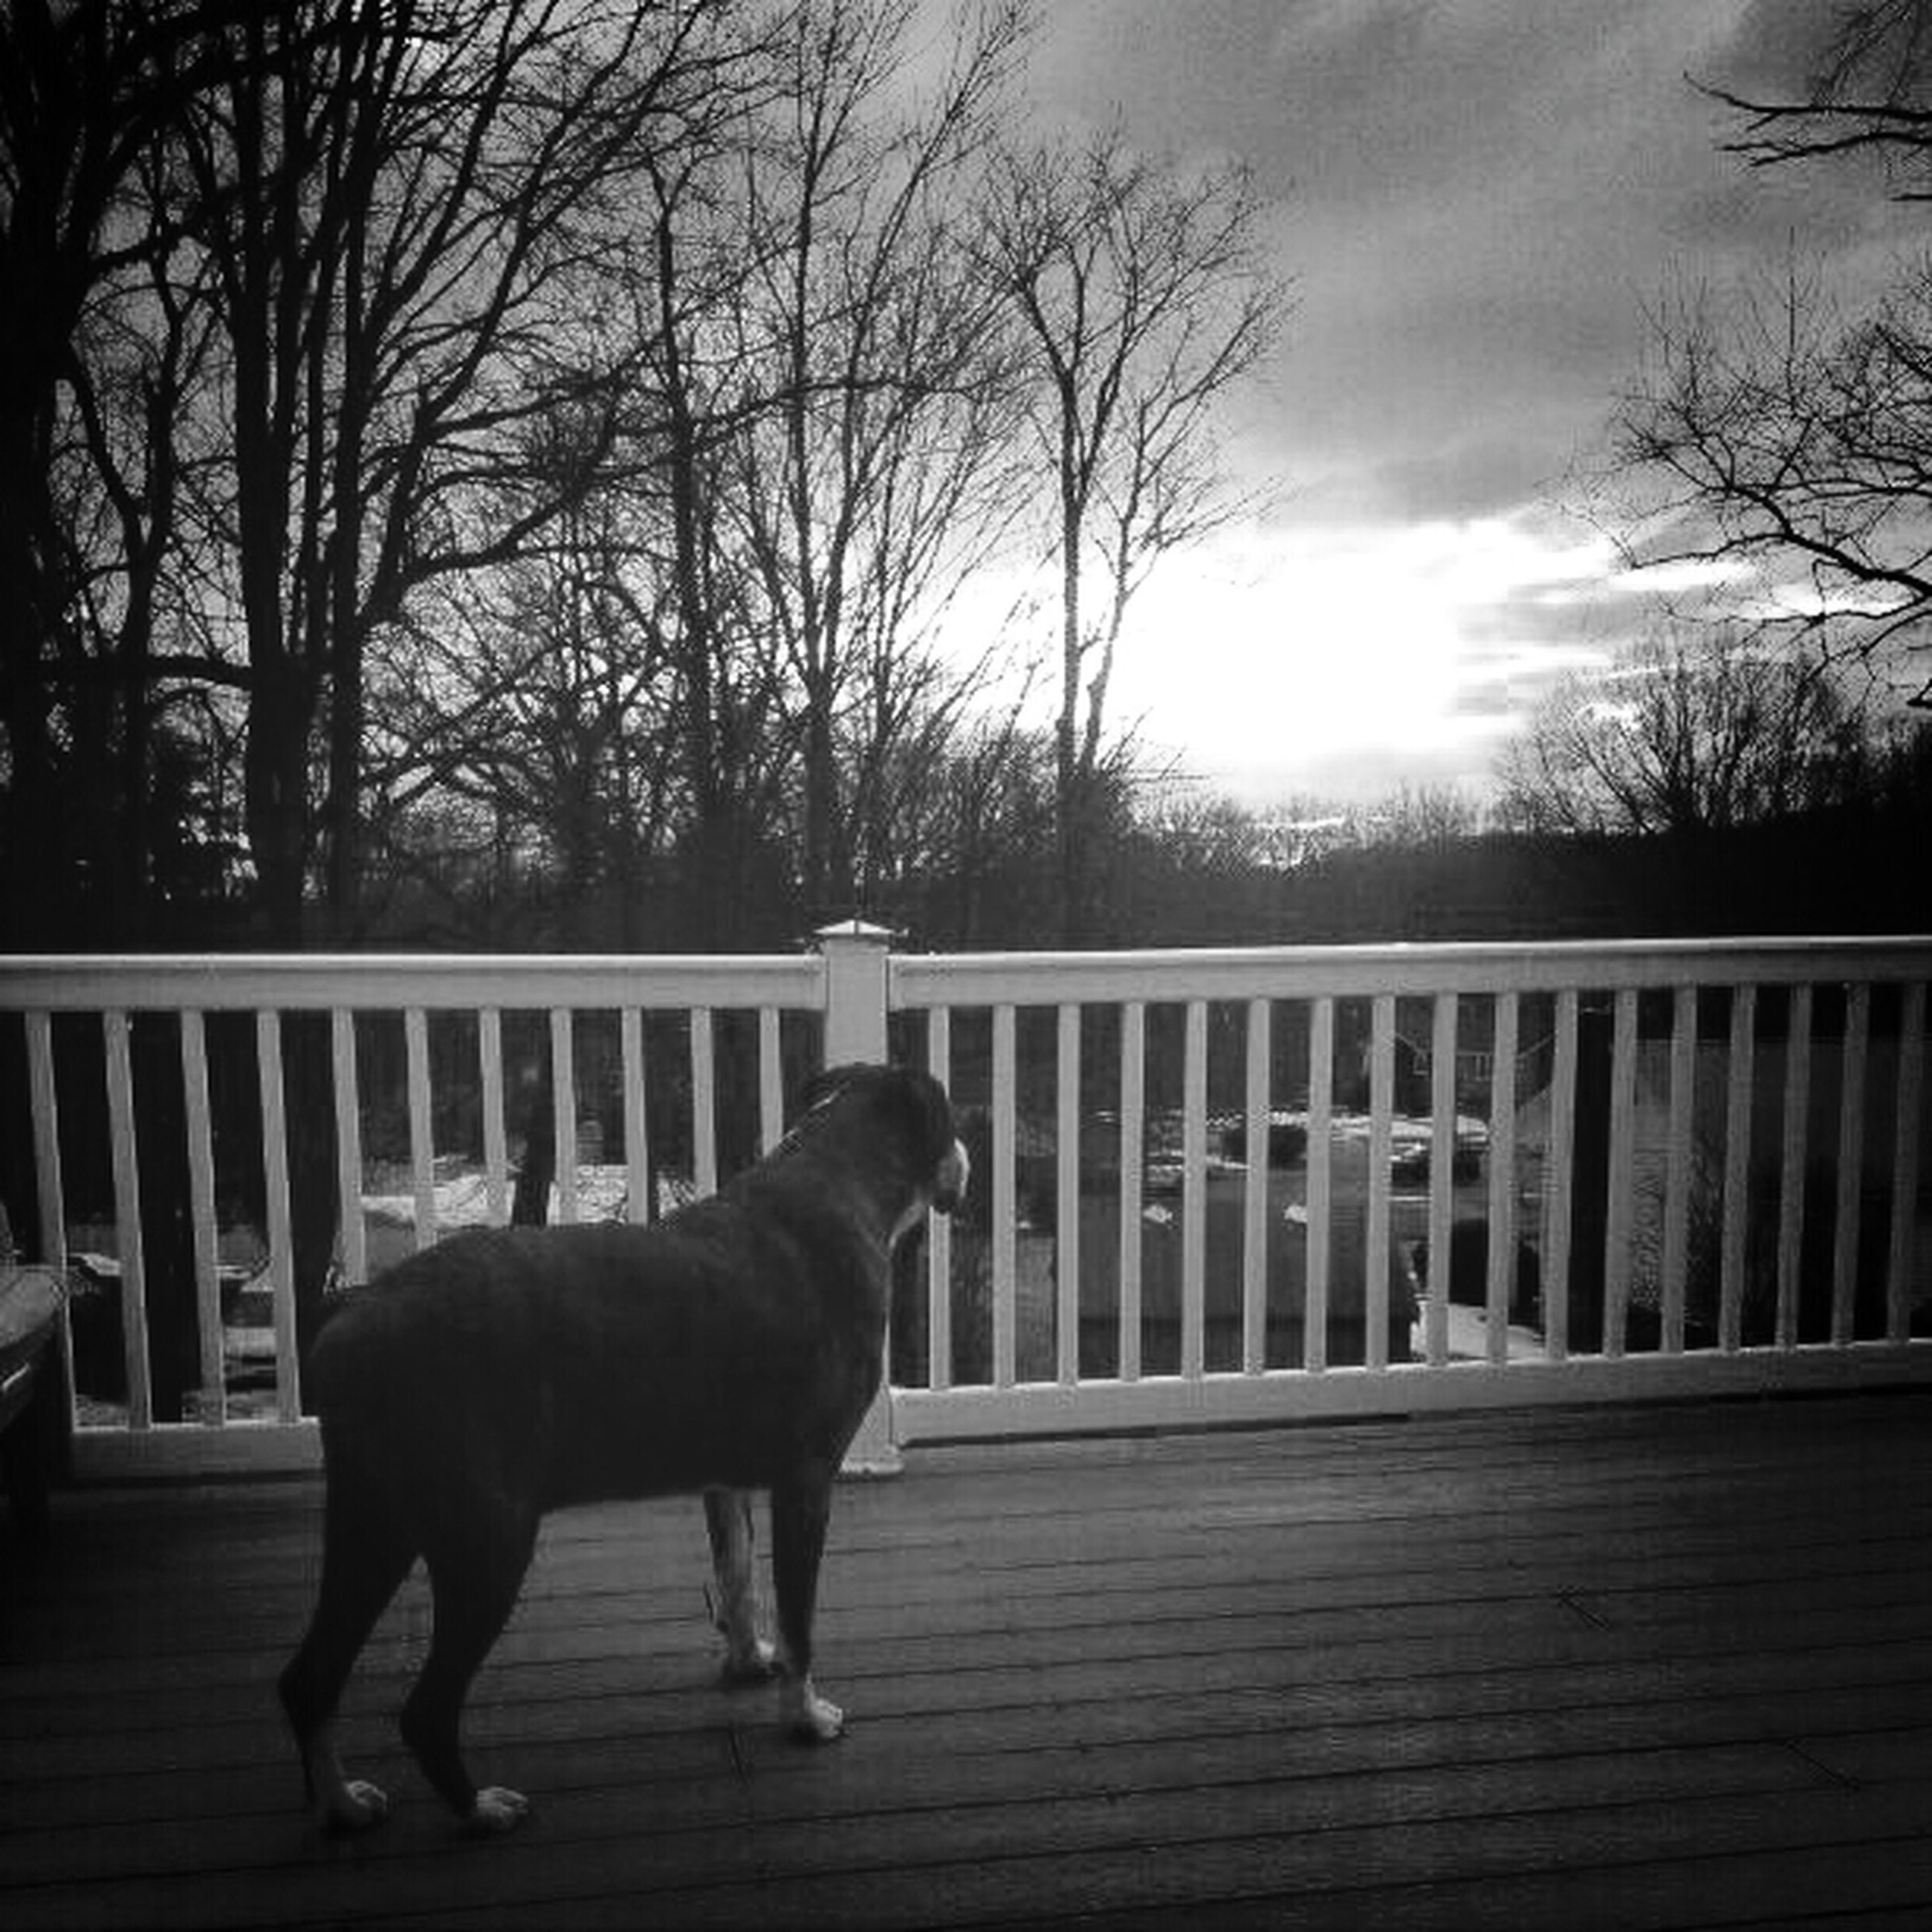 domestic animals, pets, animal themes, one animal, dog, tree, mammal, full length, sky, bare tree, railing, rear view, walking, standing, fence, men, lifestyles, outdoors